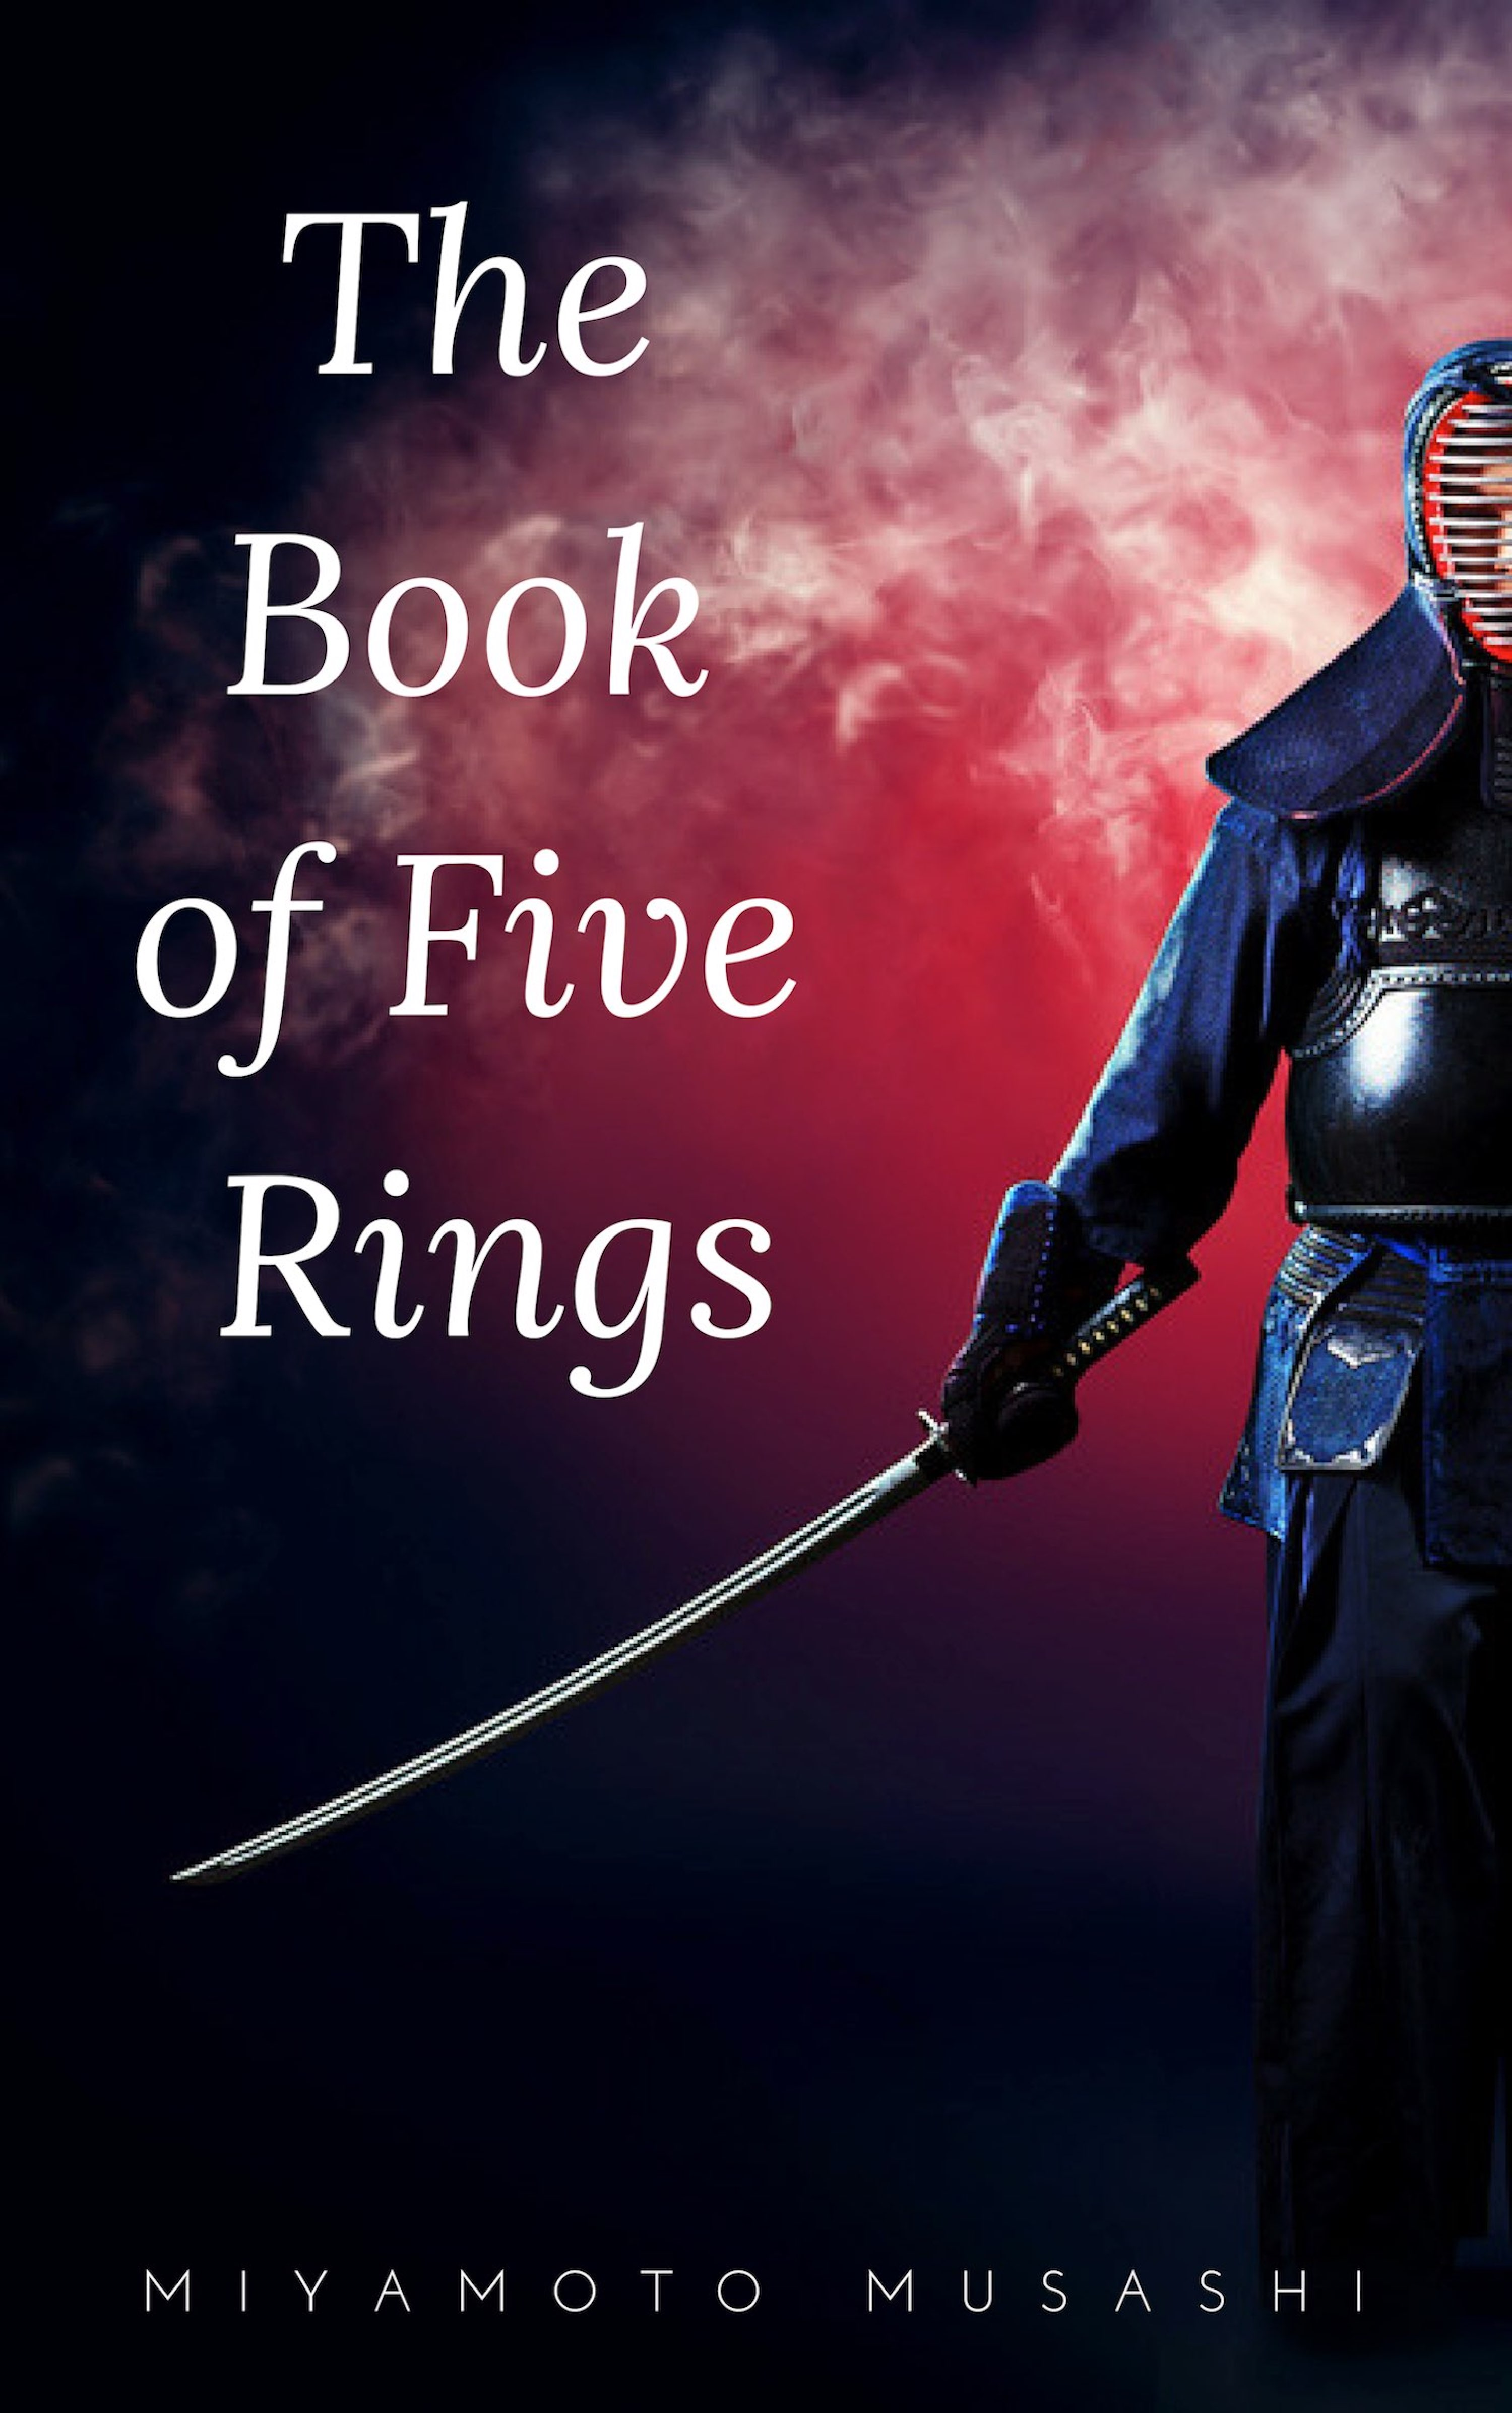 Miyamoto Musashi The Book of Five Rings (The Way of the Warrior Series) by Miyamoto Musashi musashi graphic novel